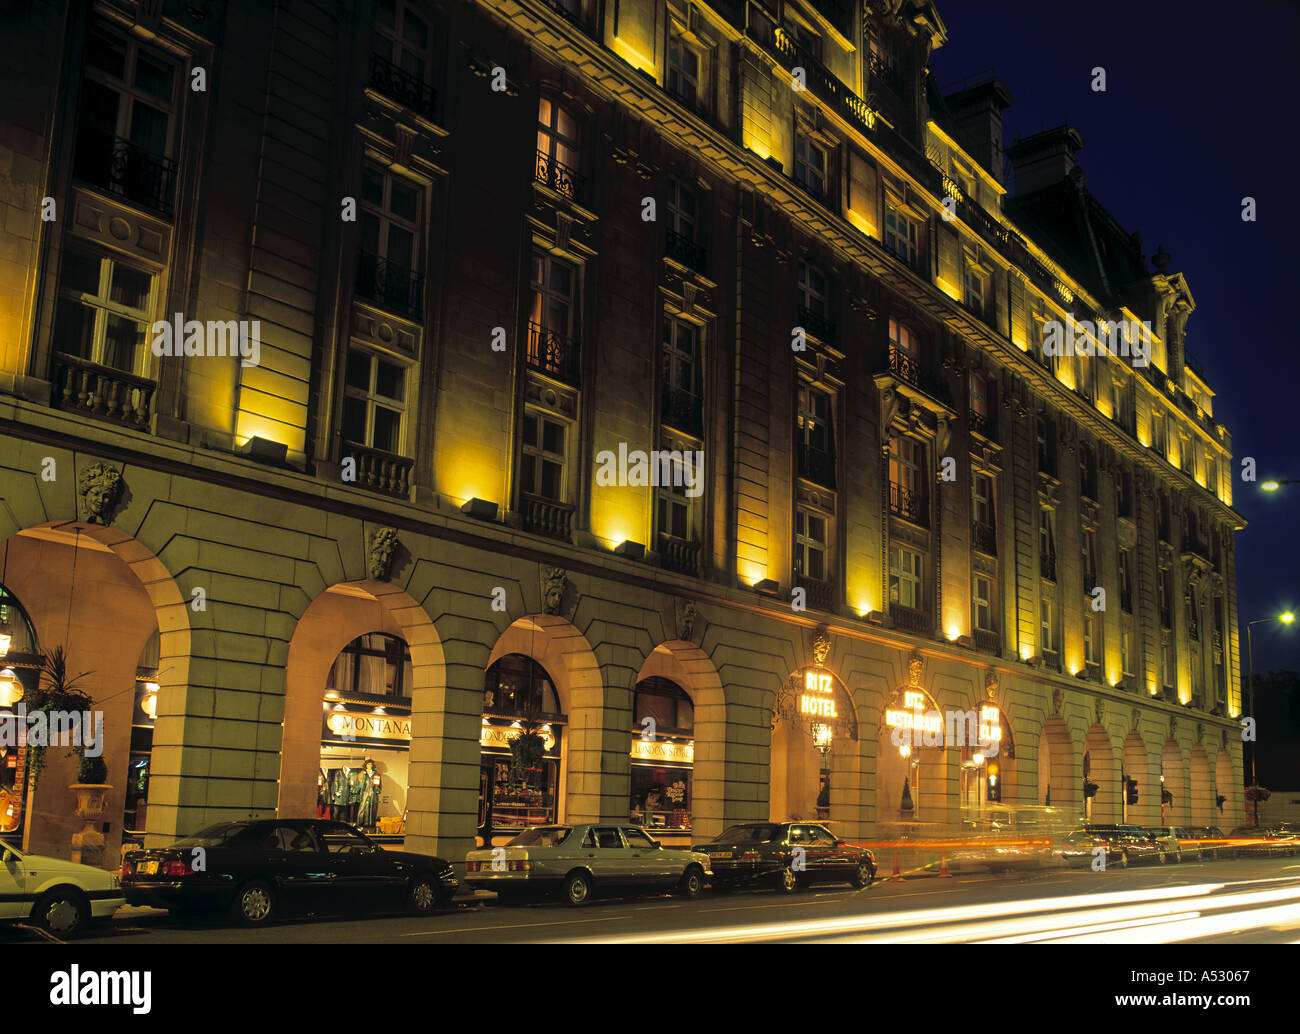 The Ritz Hotel, Picadilly, London, England - Stock Image